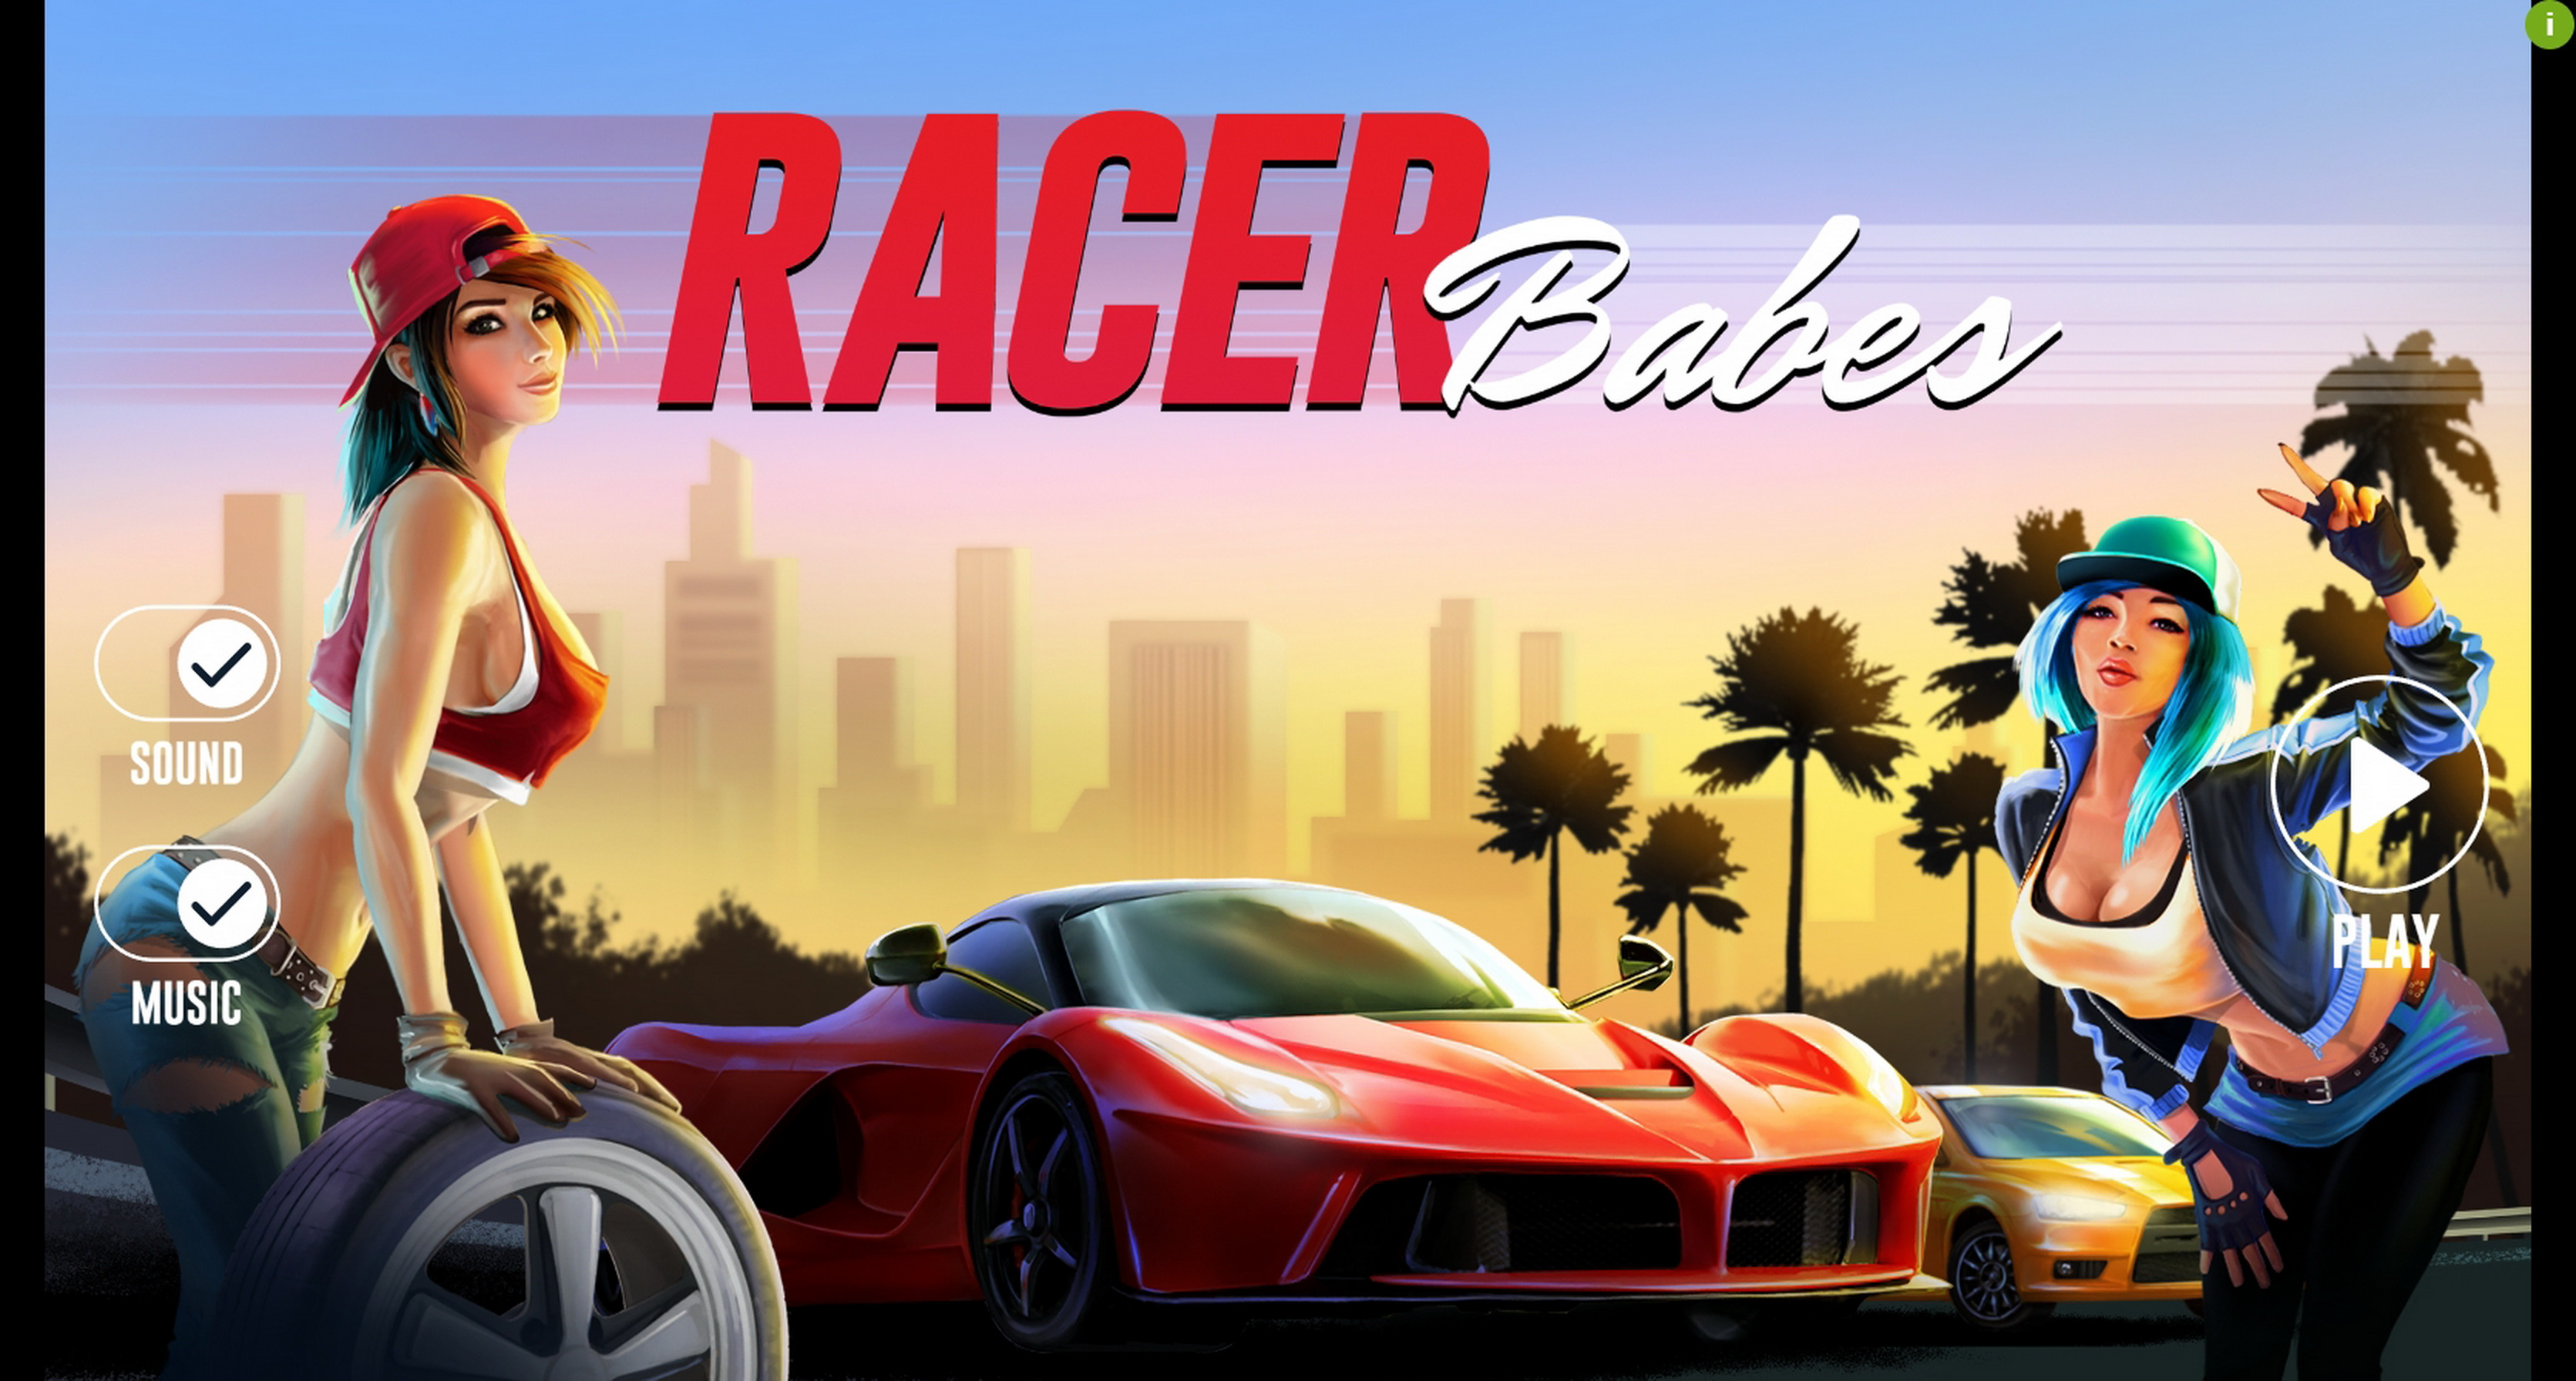 Play Racer Babes Free Casino Slot Game by Woohoo